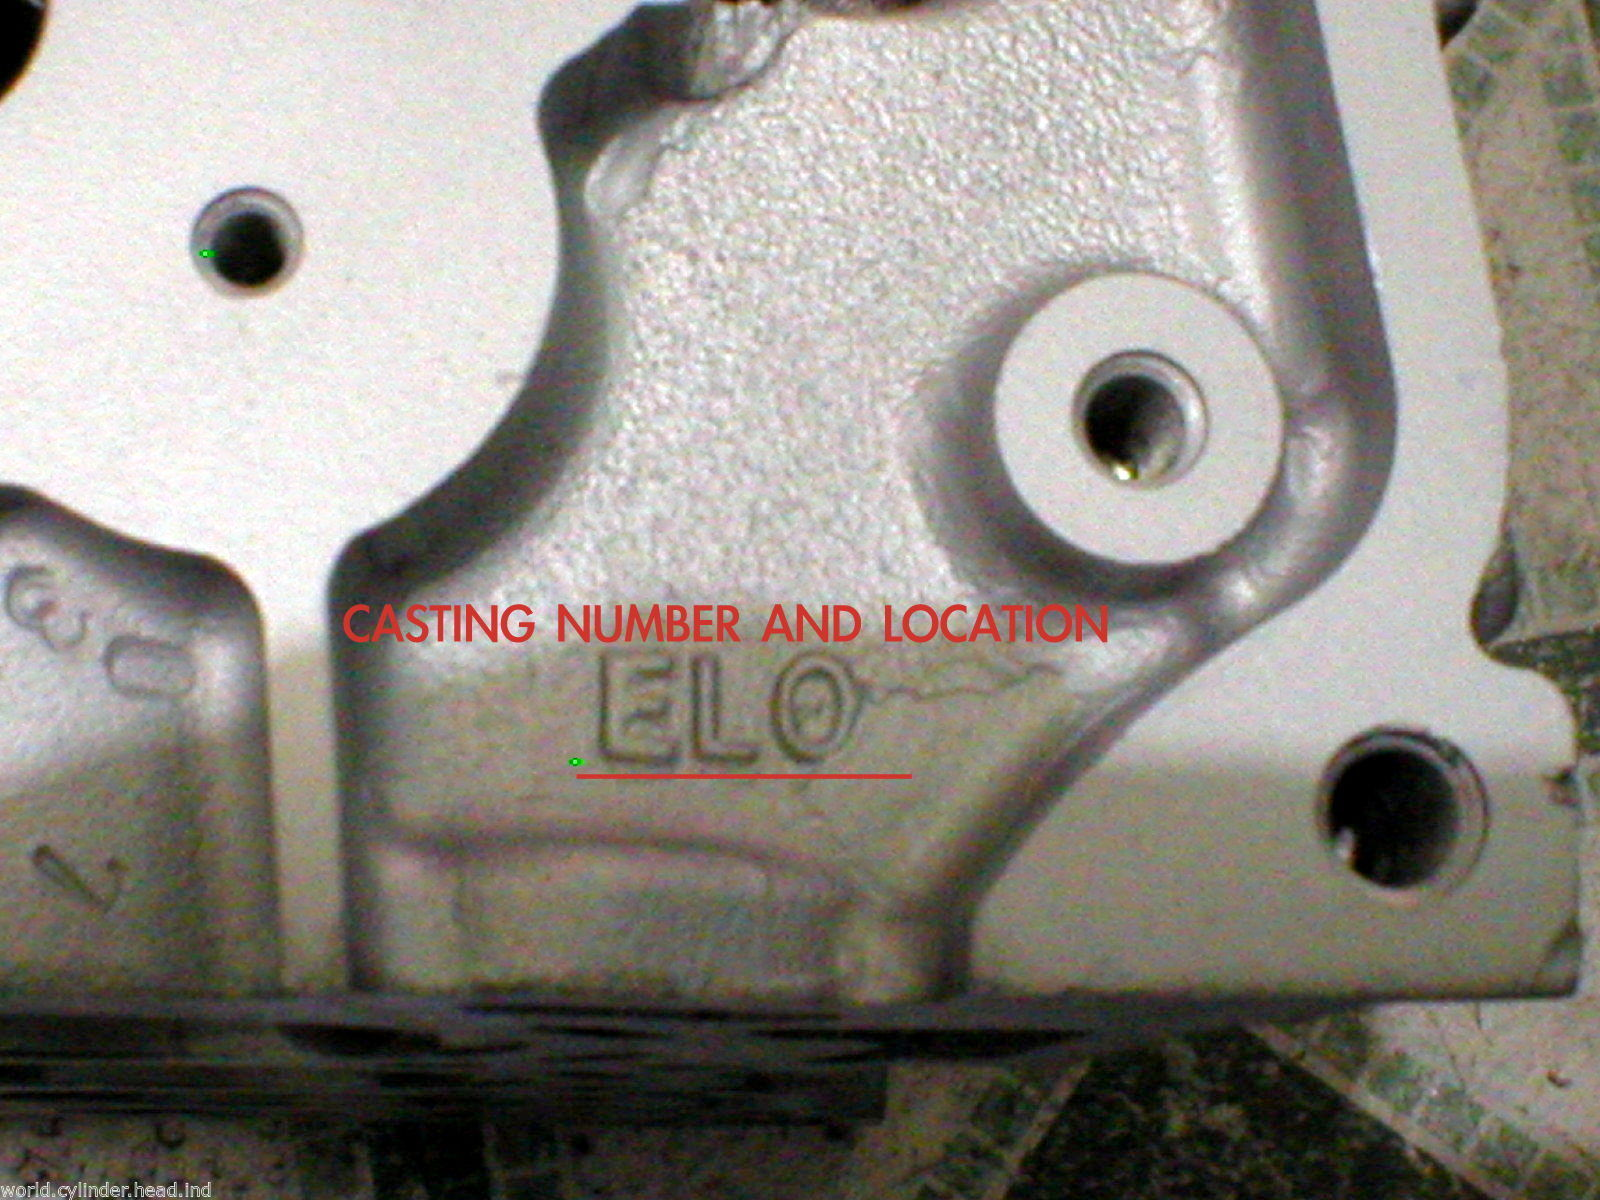 FOR NISSAN Versa Sentra 1 8 2 0 DOHC CYLINDER HEAD CASTING #ELO ONLY  2007-2015